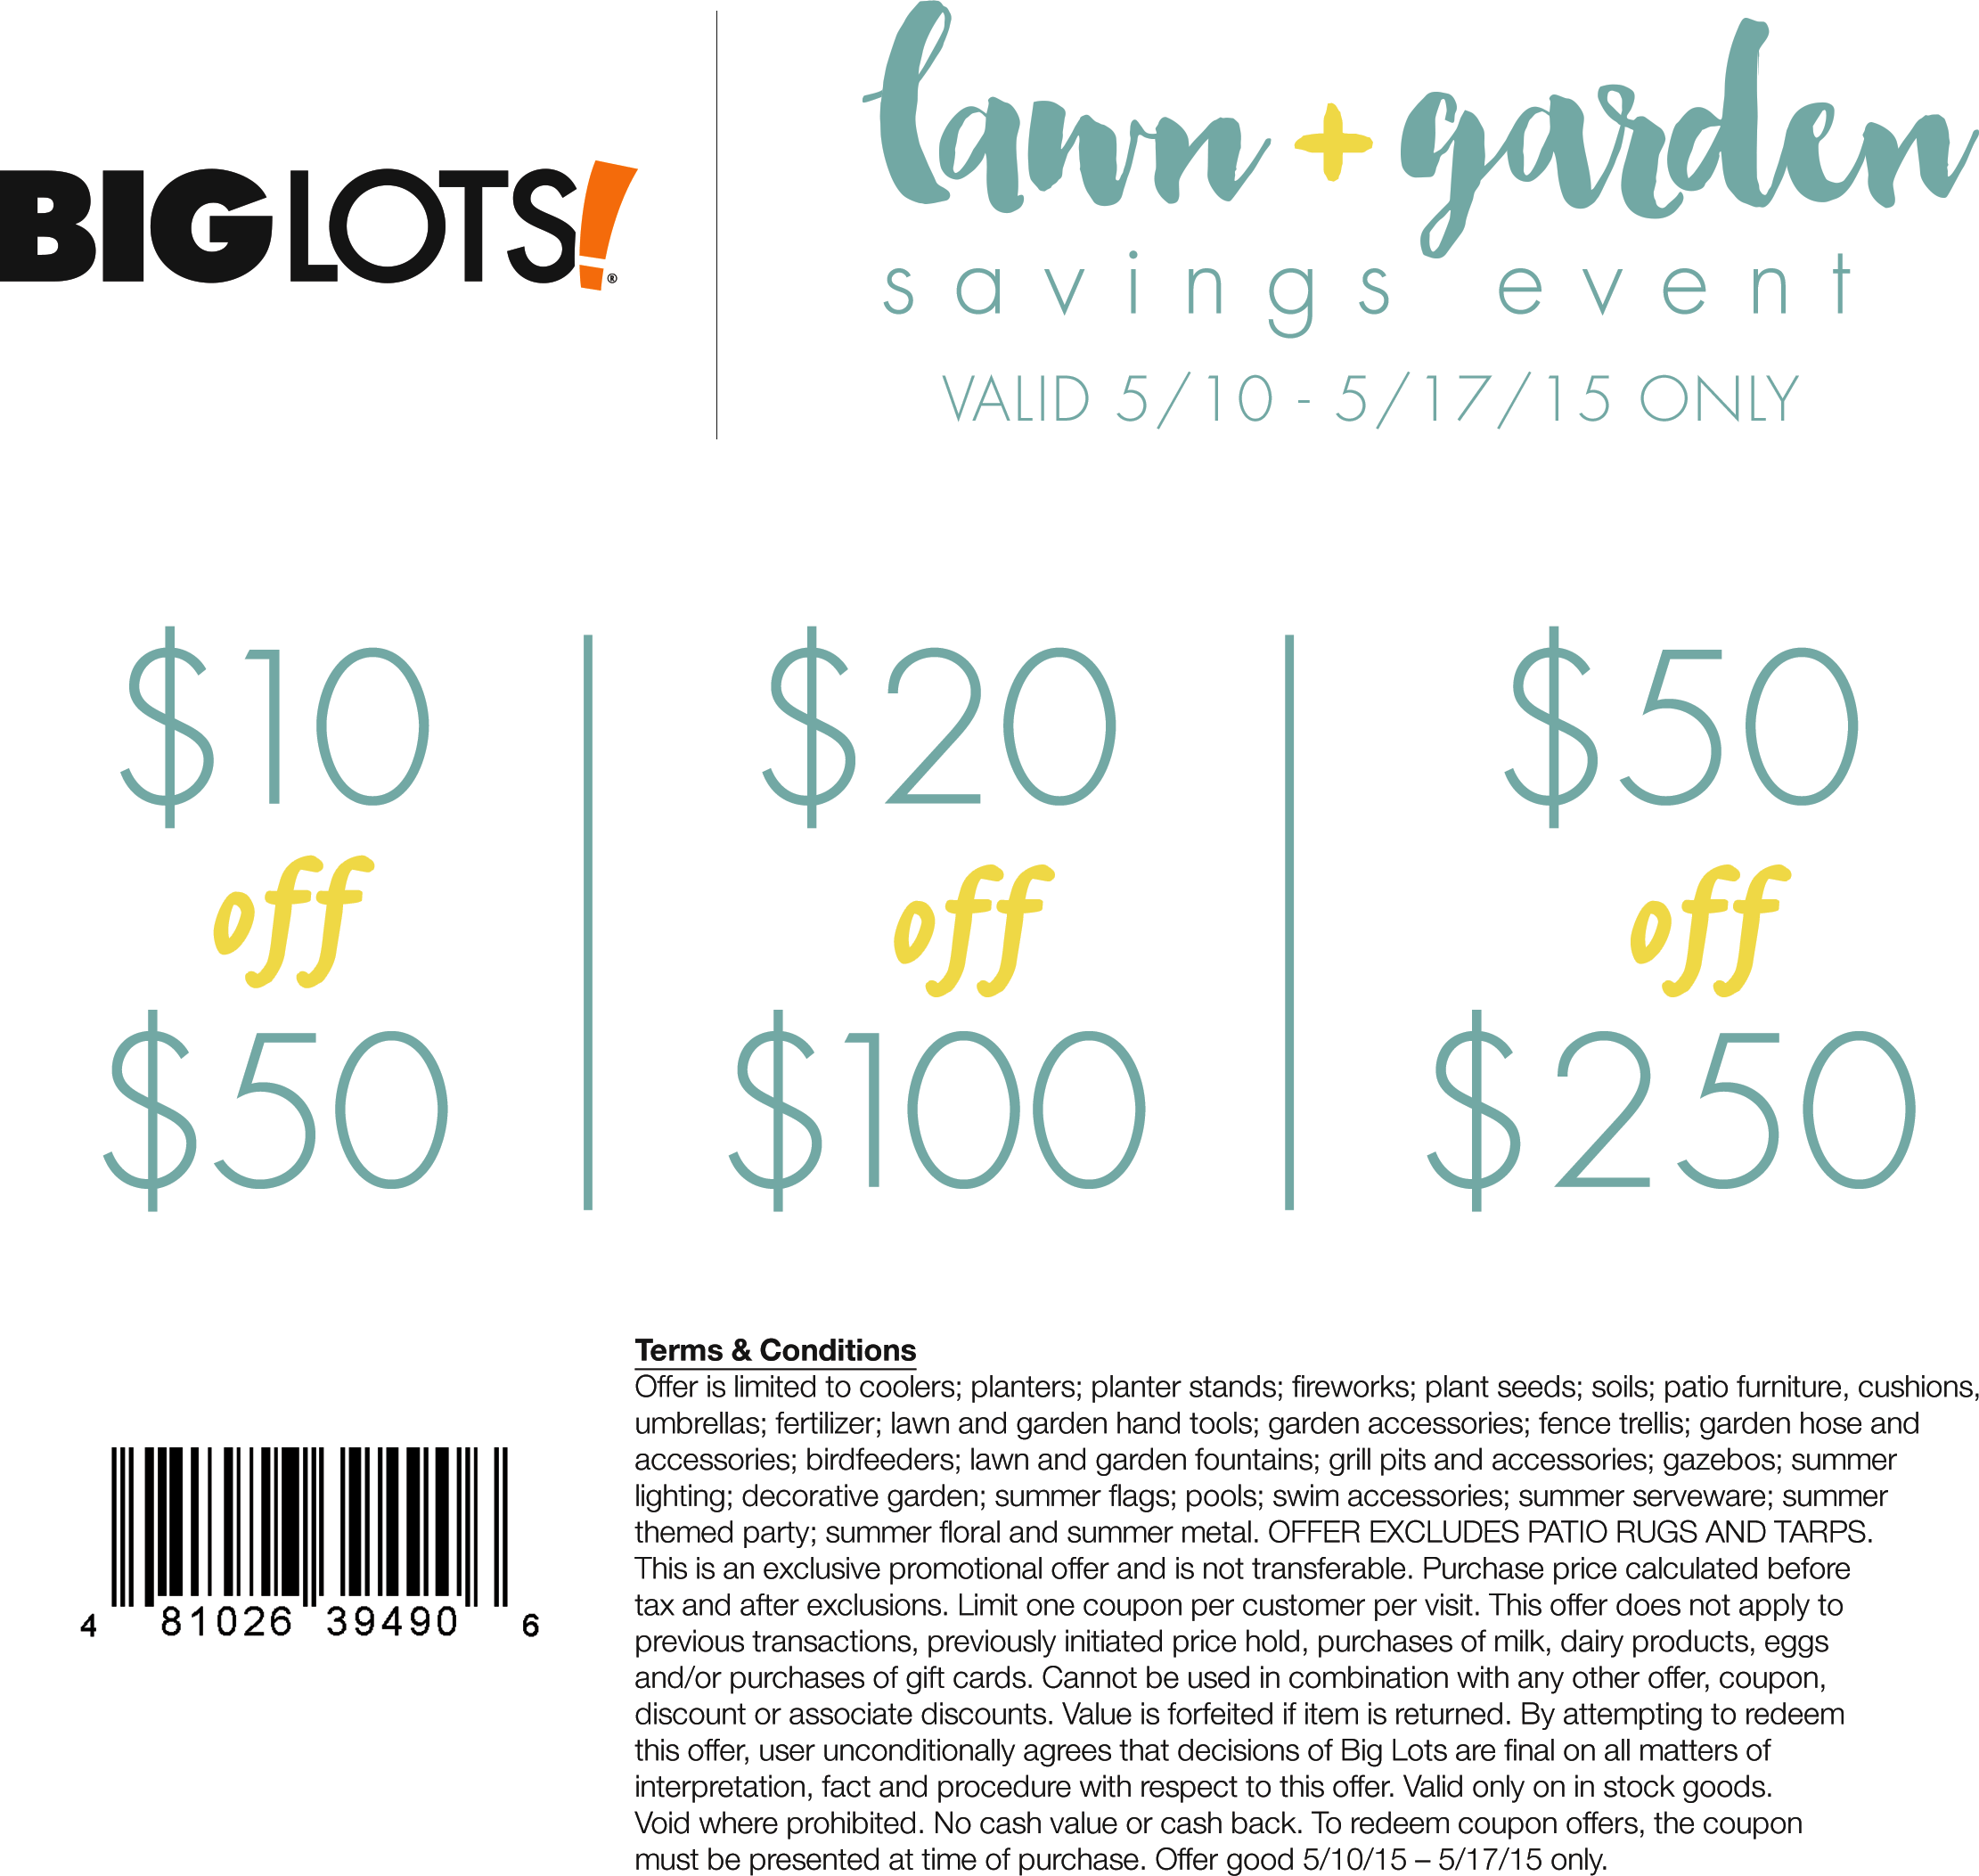 Big Lots Coupon June 2017 $10 off $50 & more on lawn & garden at Big Lots